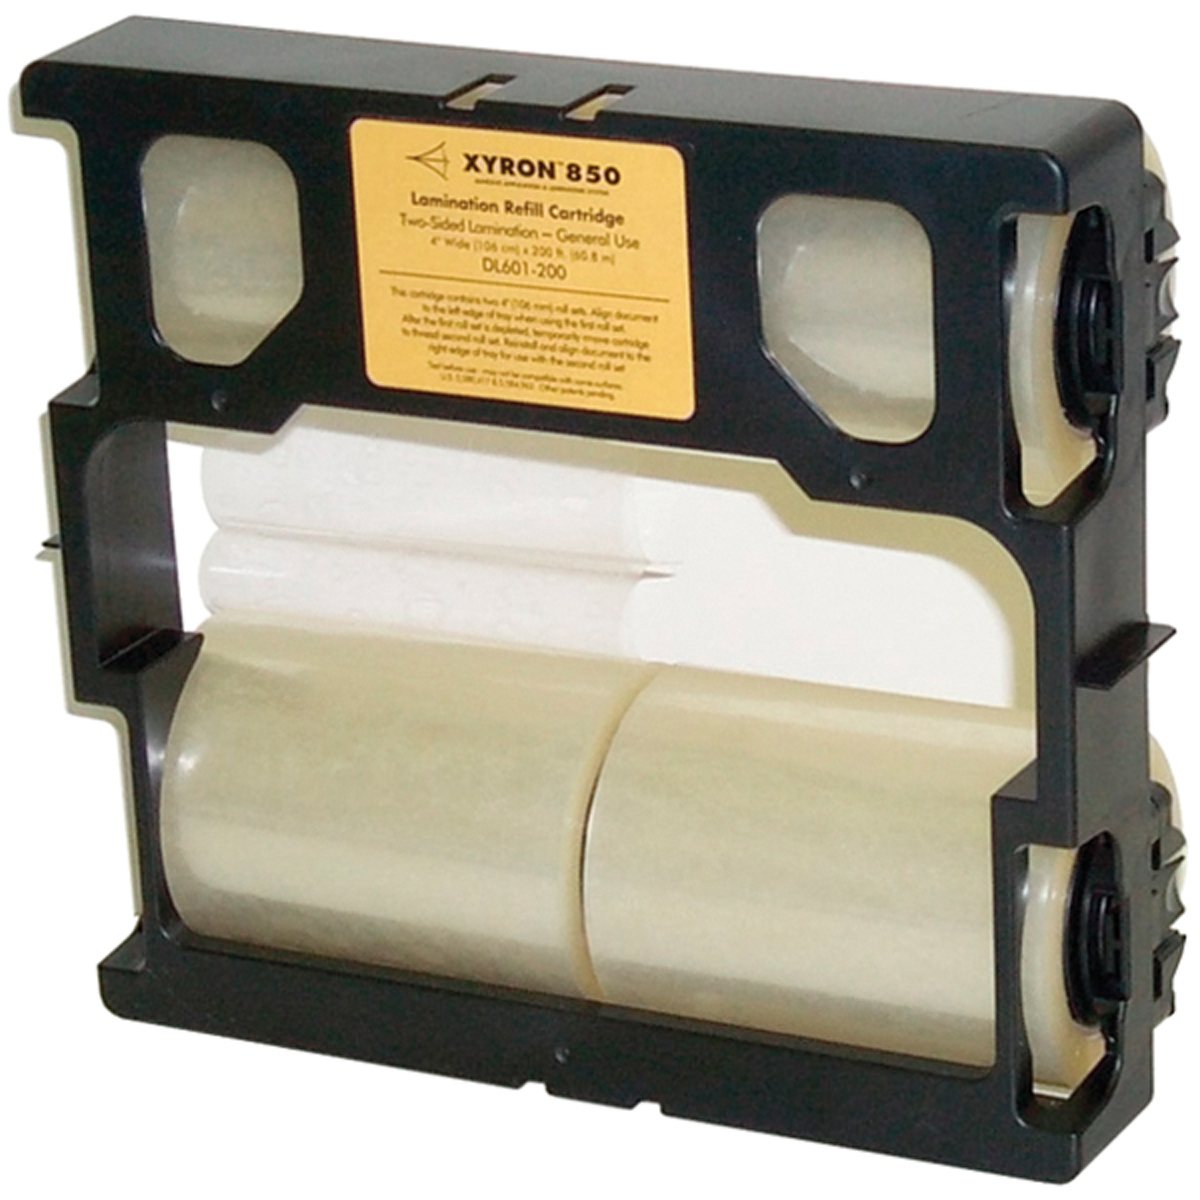 XRN850 REP-ADHESIVE CARTRIDGE -  CLEARANCE - NO FURTHER DISCOUNTS / NO RETURNS